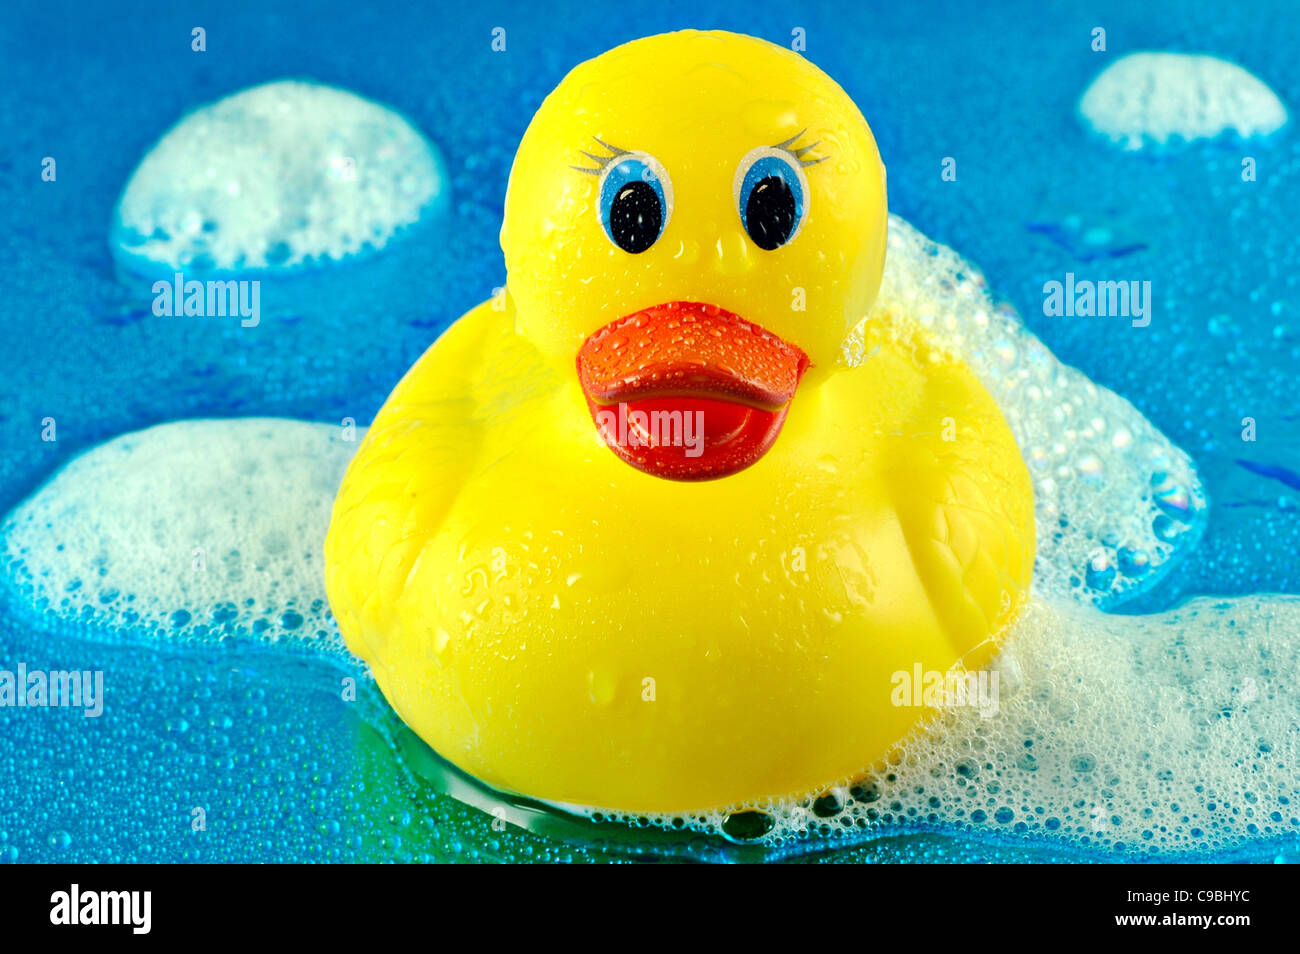 Toy Rubber Duck Swimming In Soap Bubbles On A Shiny Watery